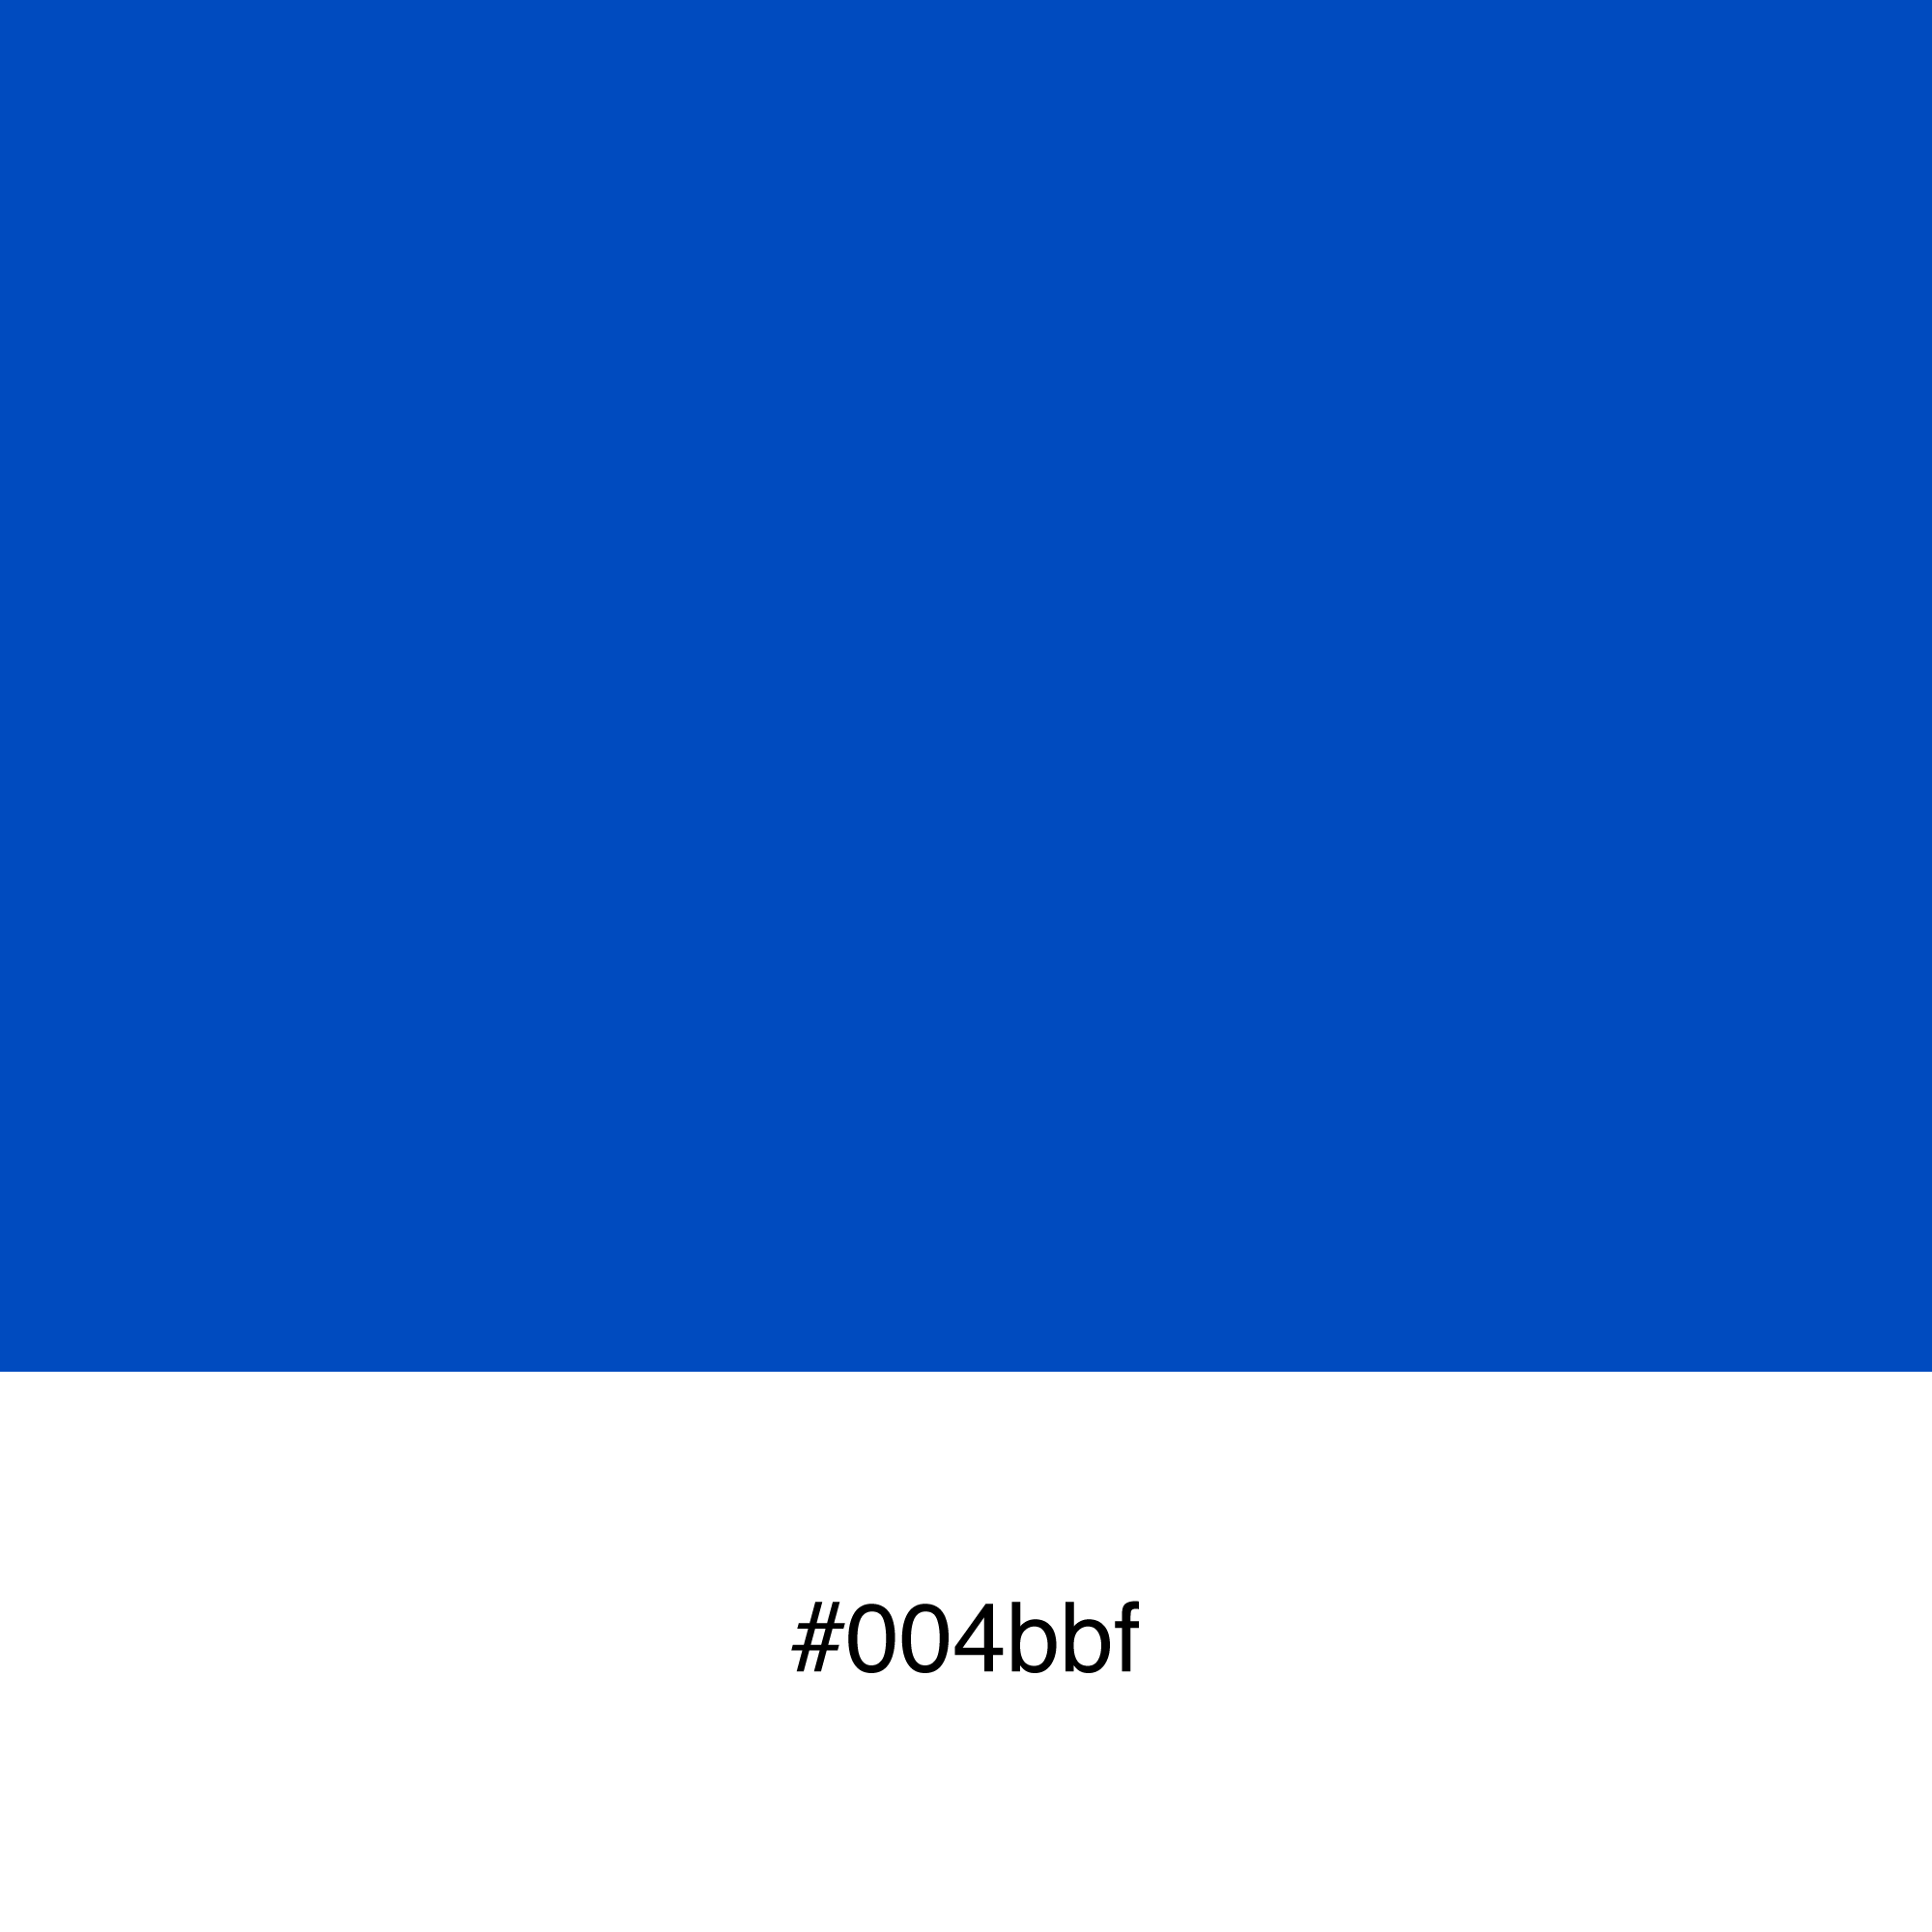 color-swatch-004bbf